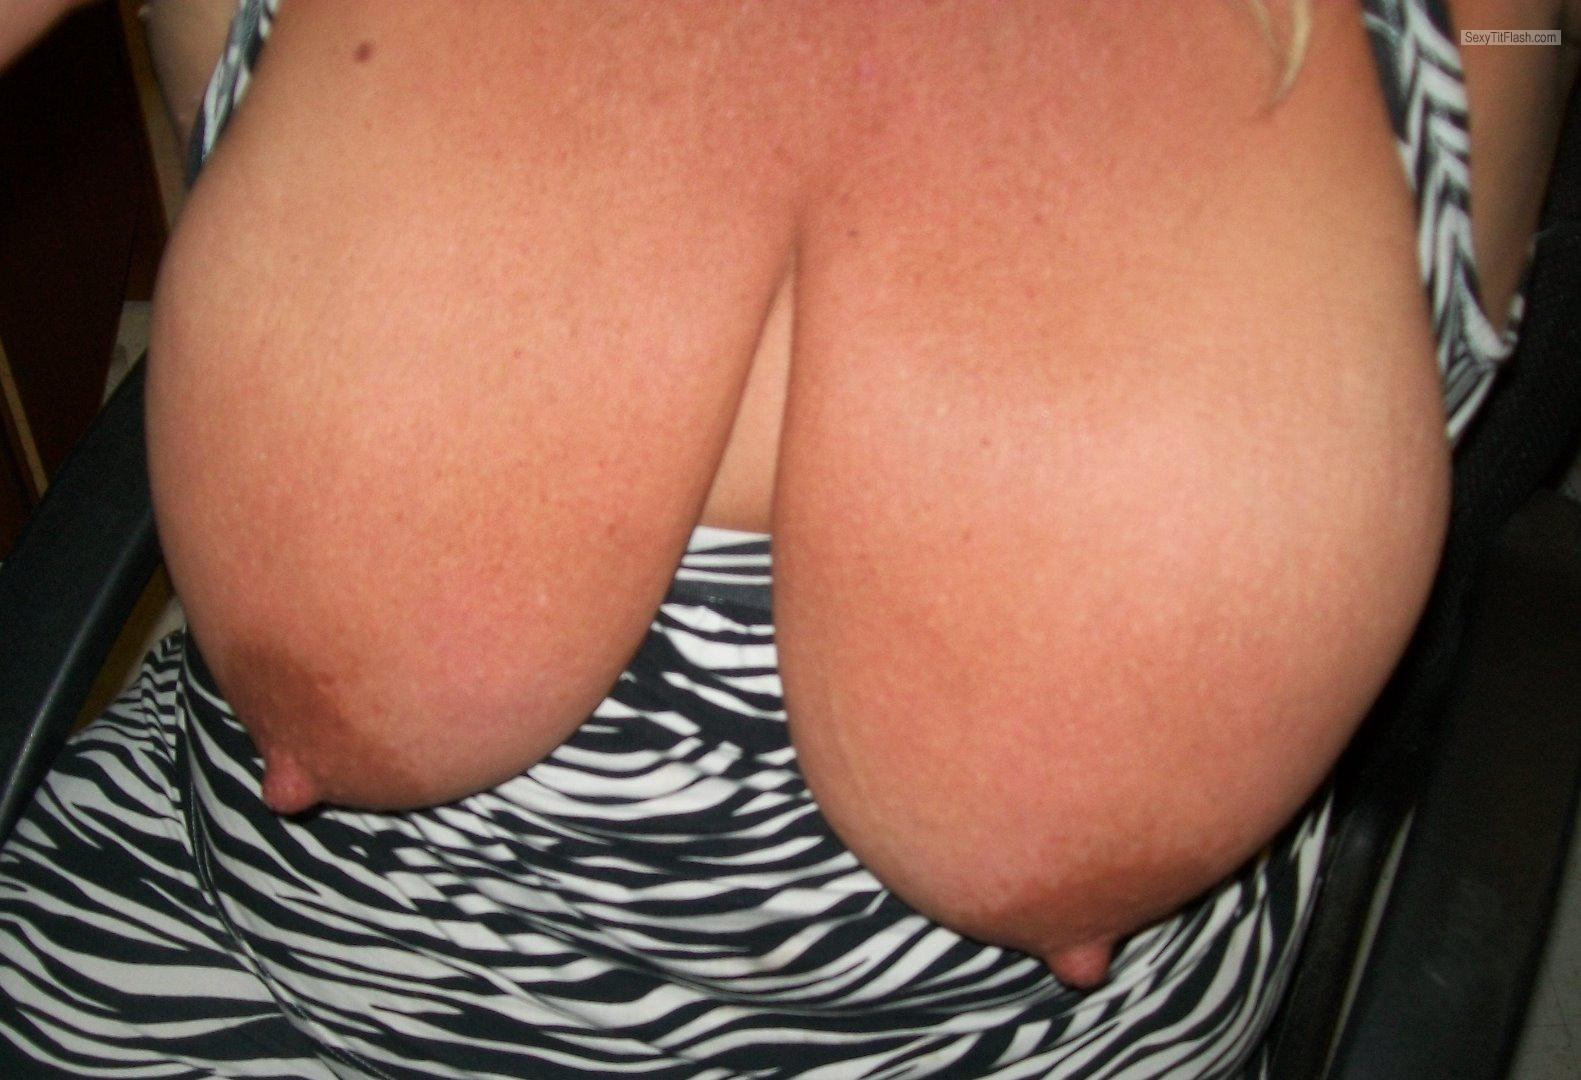 My Big Tits Selfie by KTX